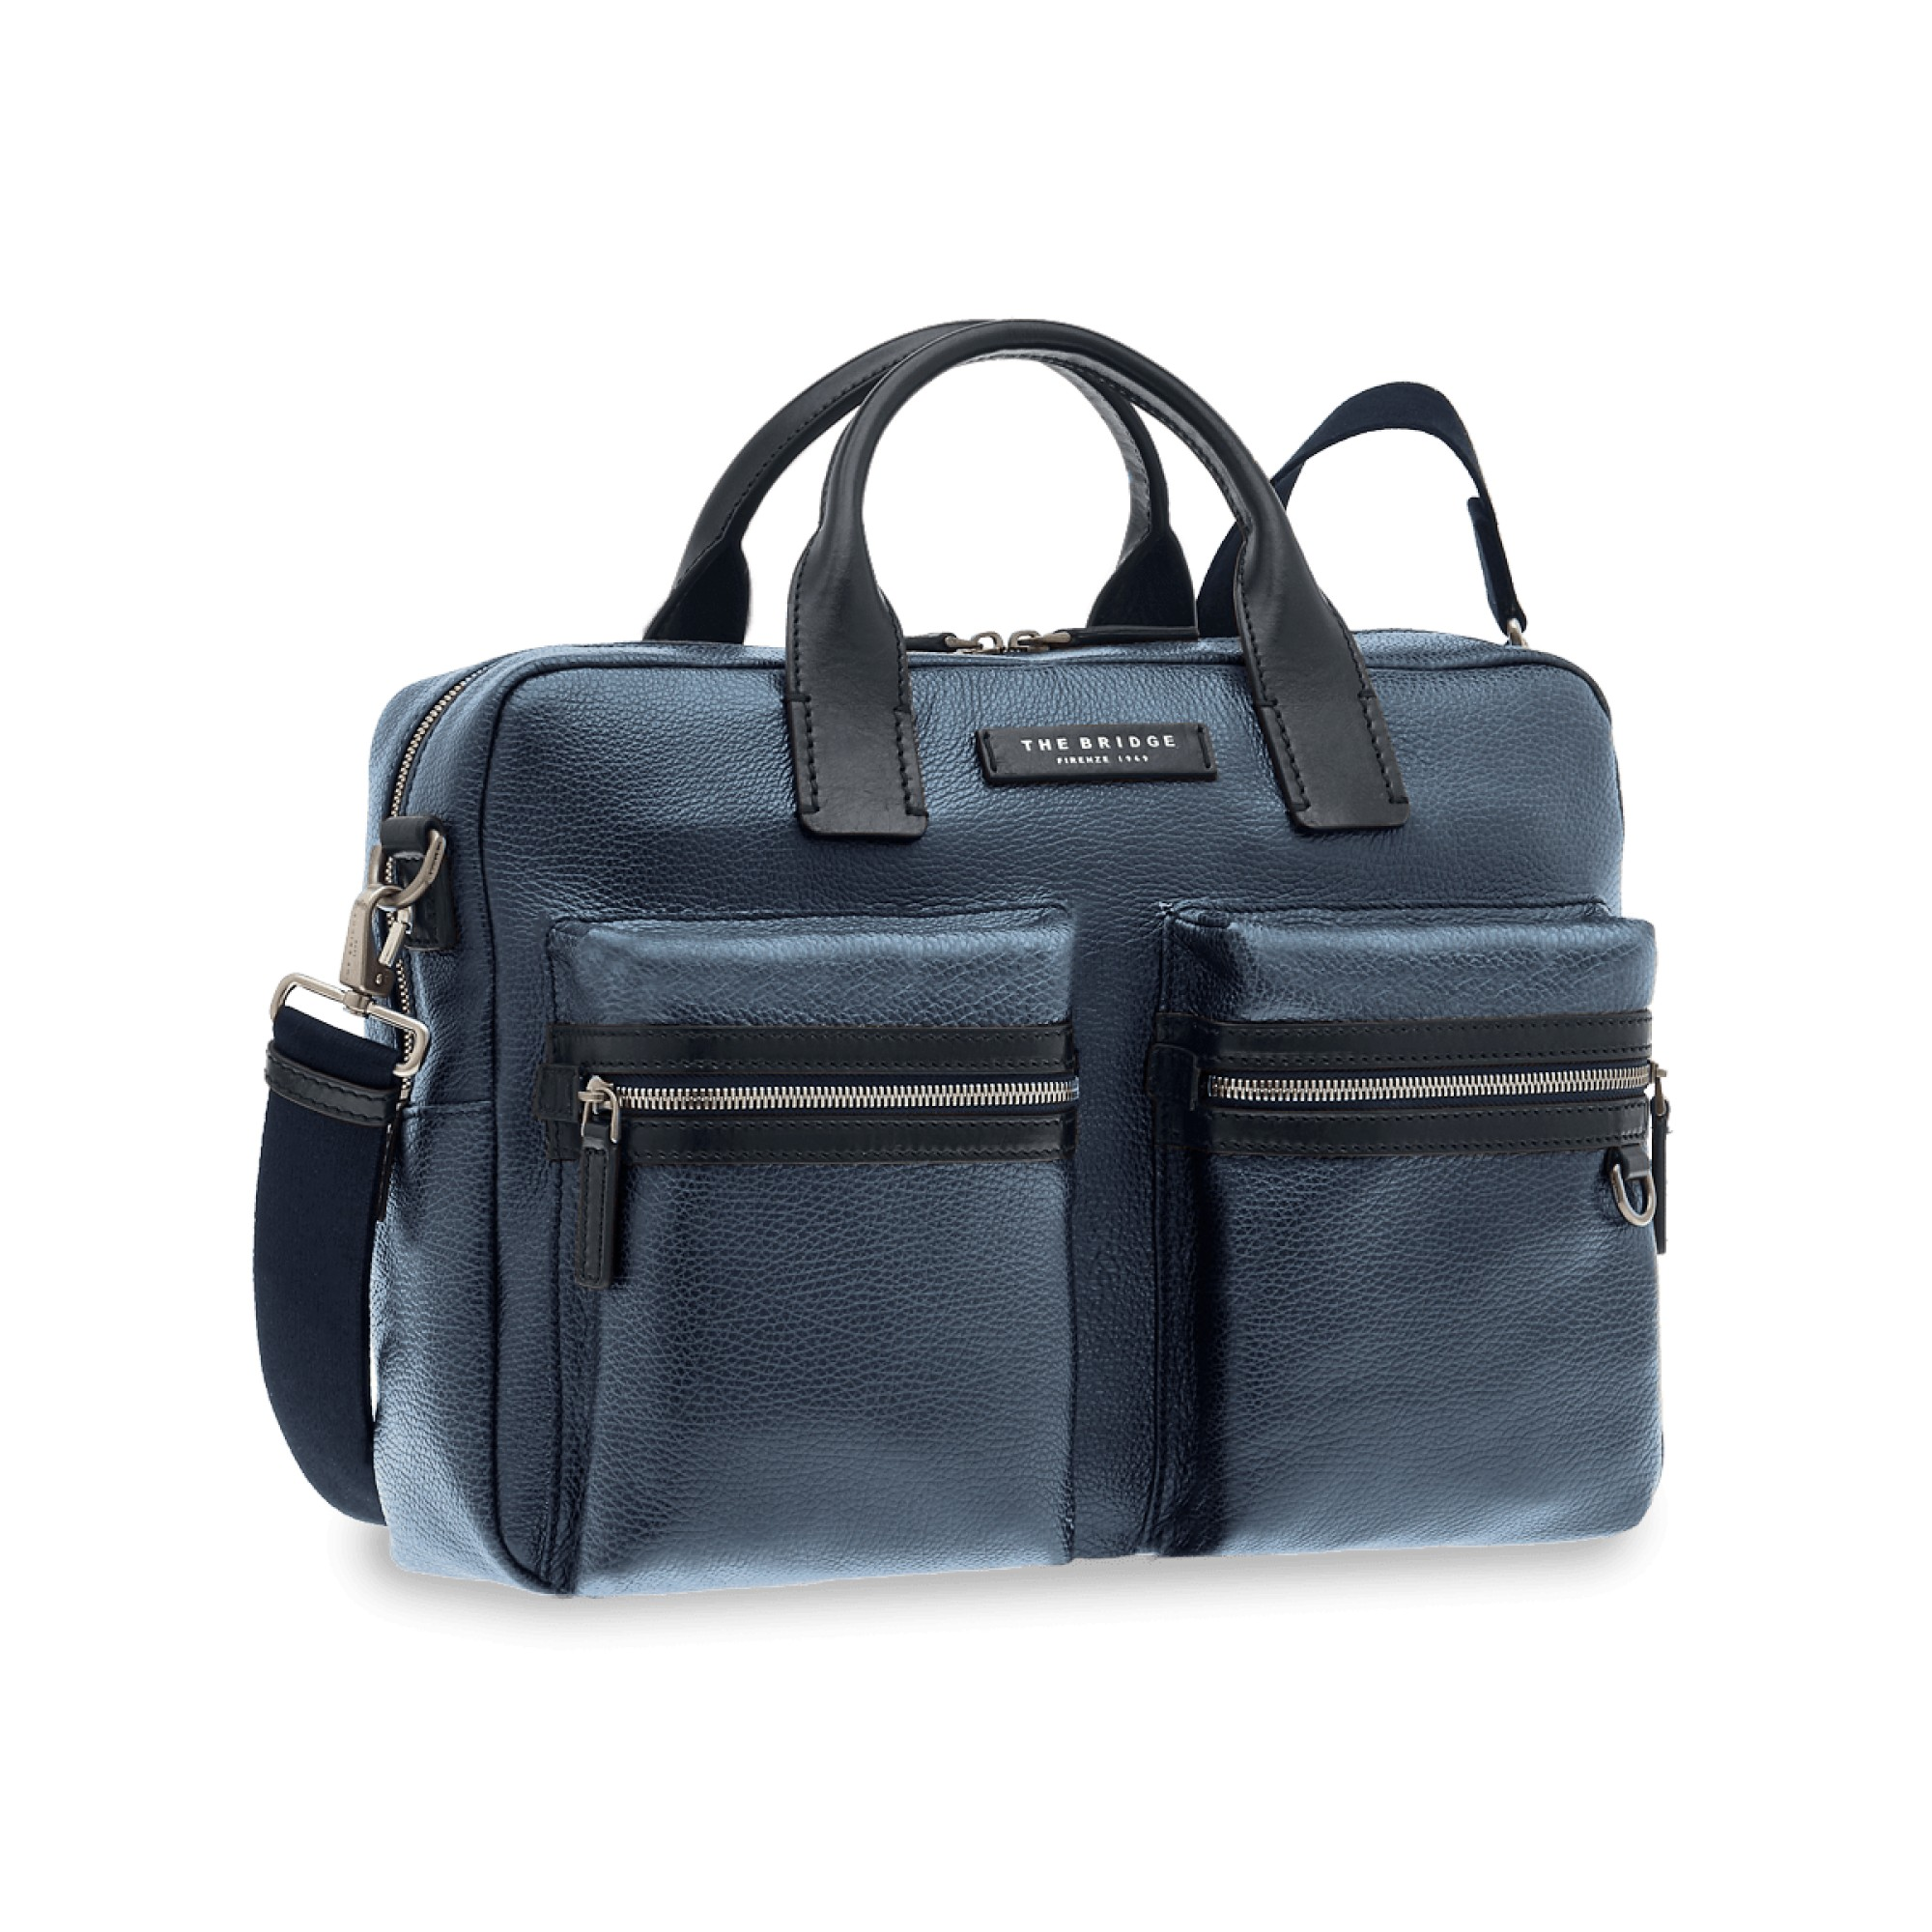 CARTELLA THE BRIDGE KEROUAC BRIEFCASE 0611282F 79 BLU NAVY/RUTENIO